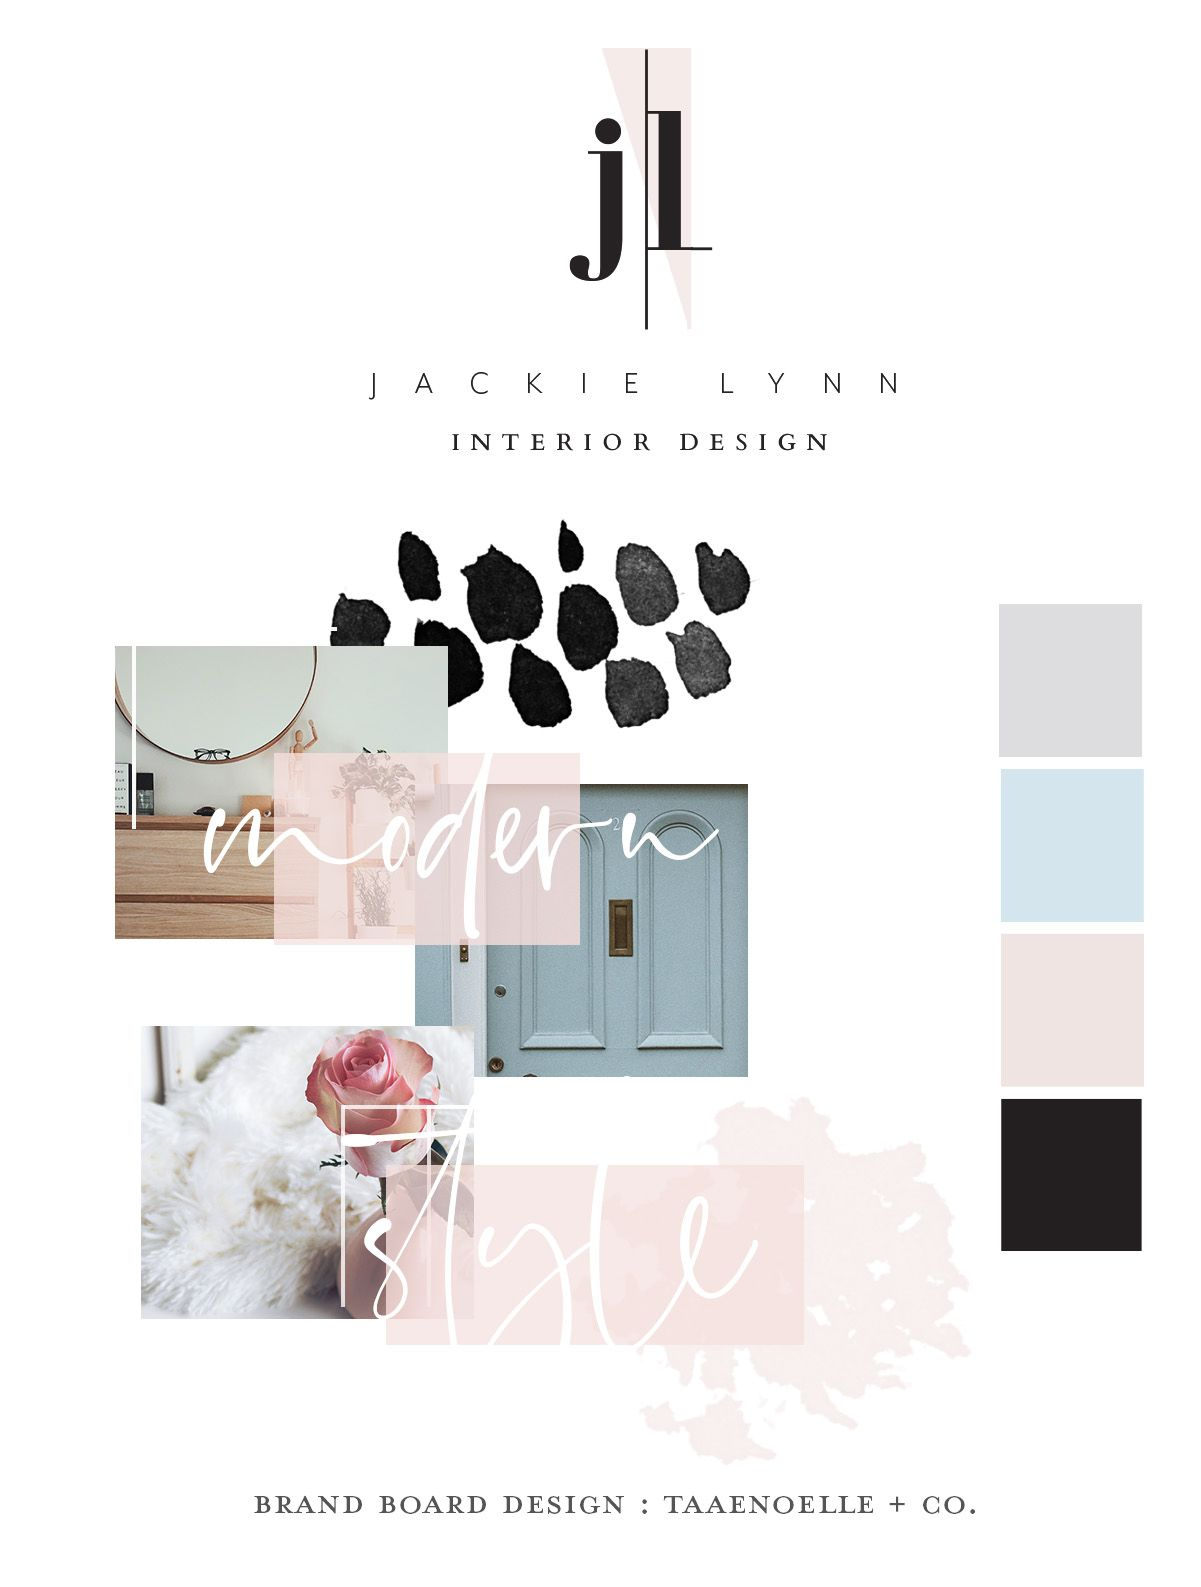 Gorgeous Brand Design With A Modern Interior Designer In Mind Created To Exude All Things Feminine A Interior Designer Logo Brand Board Design Branding Design